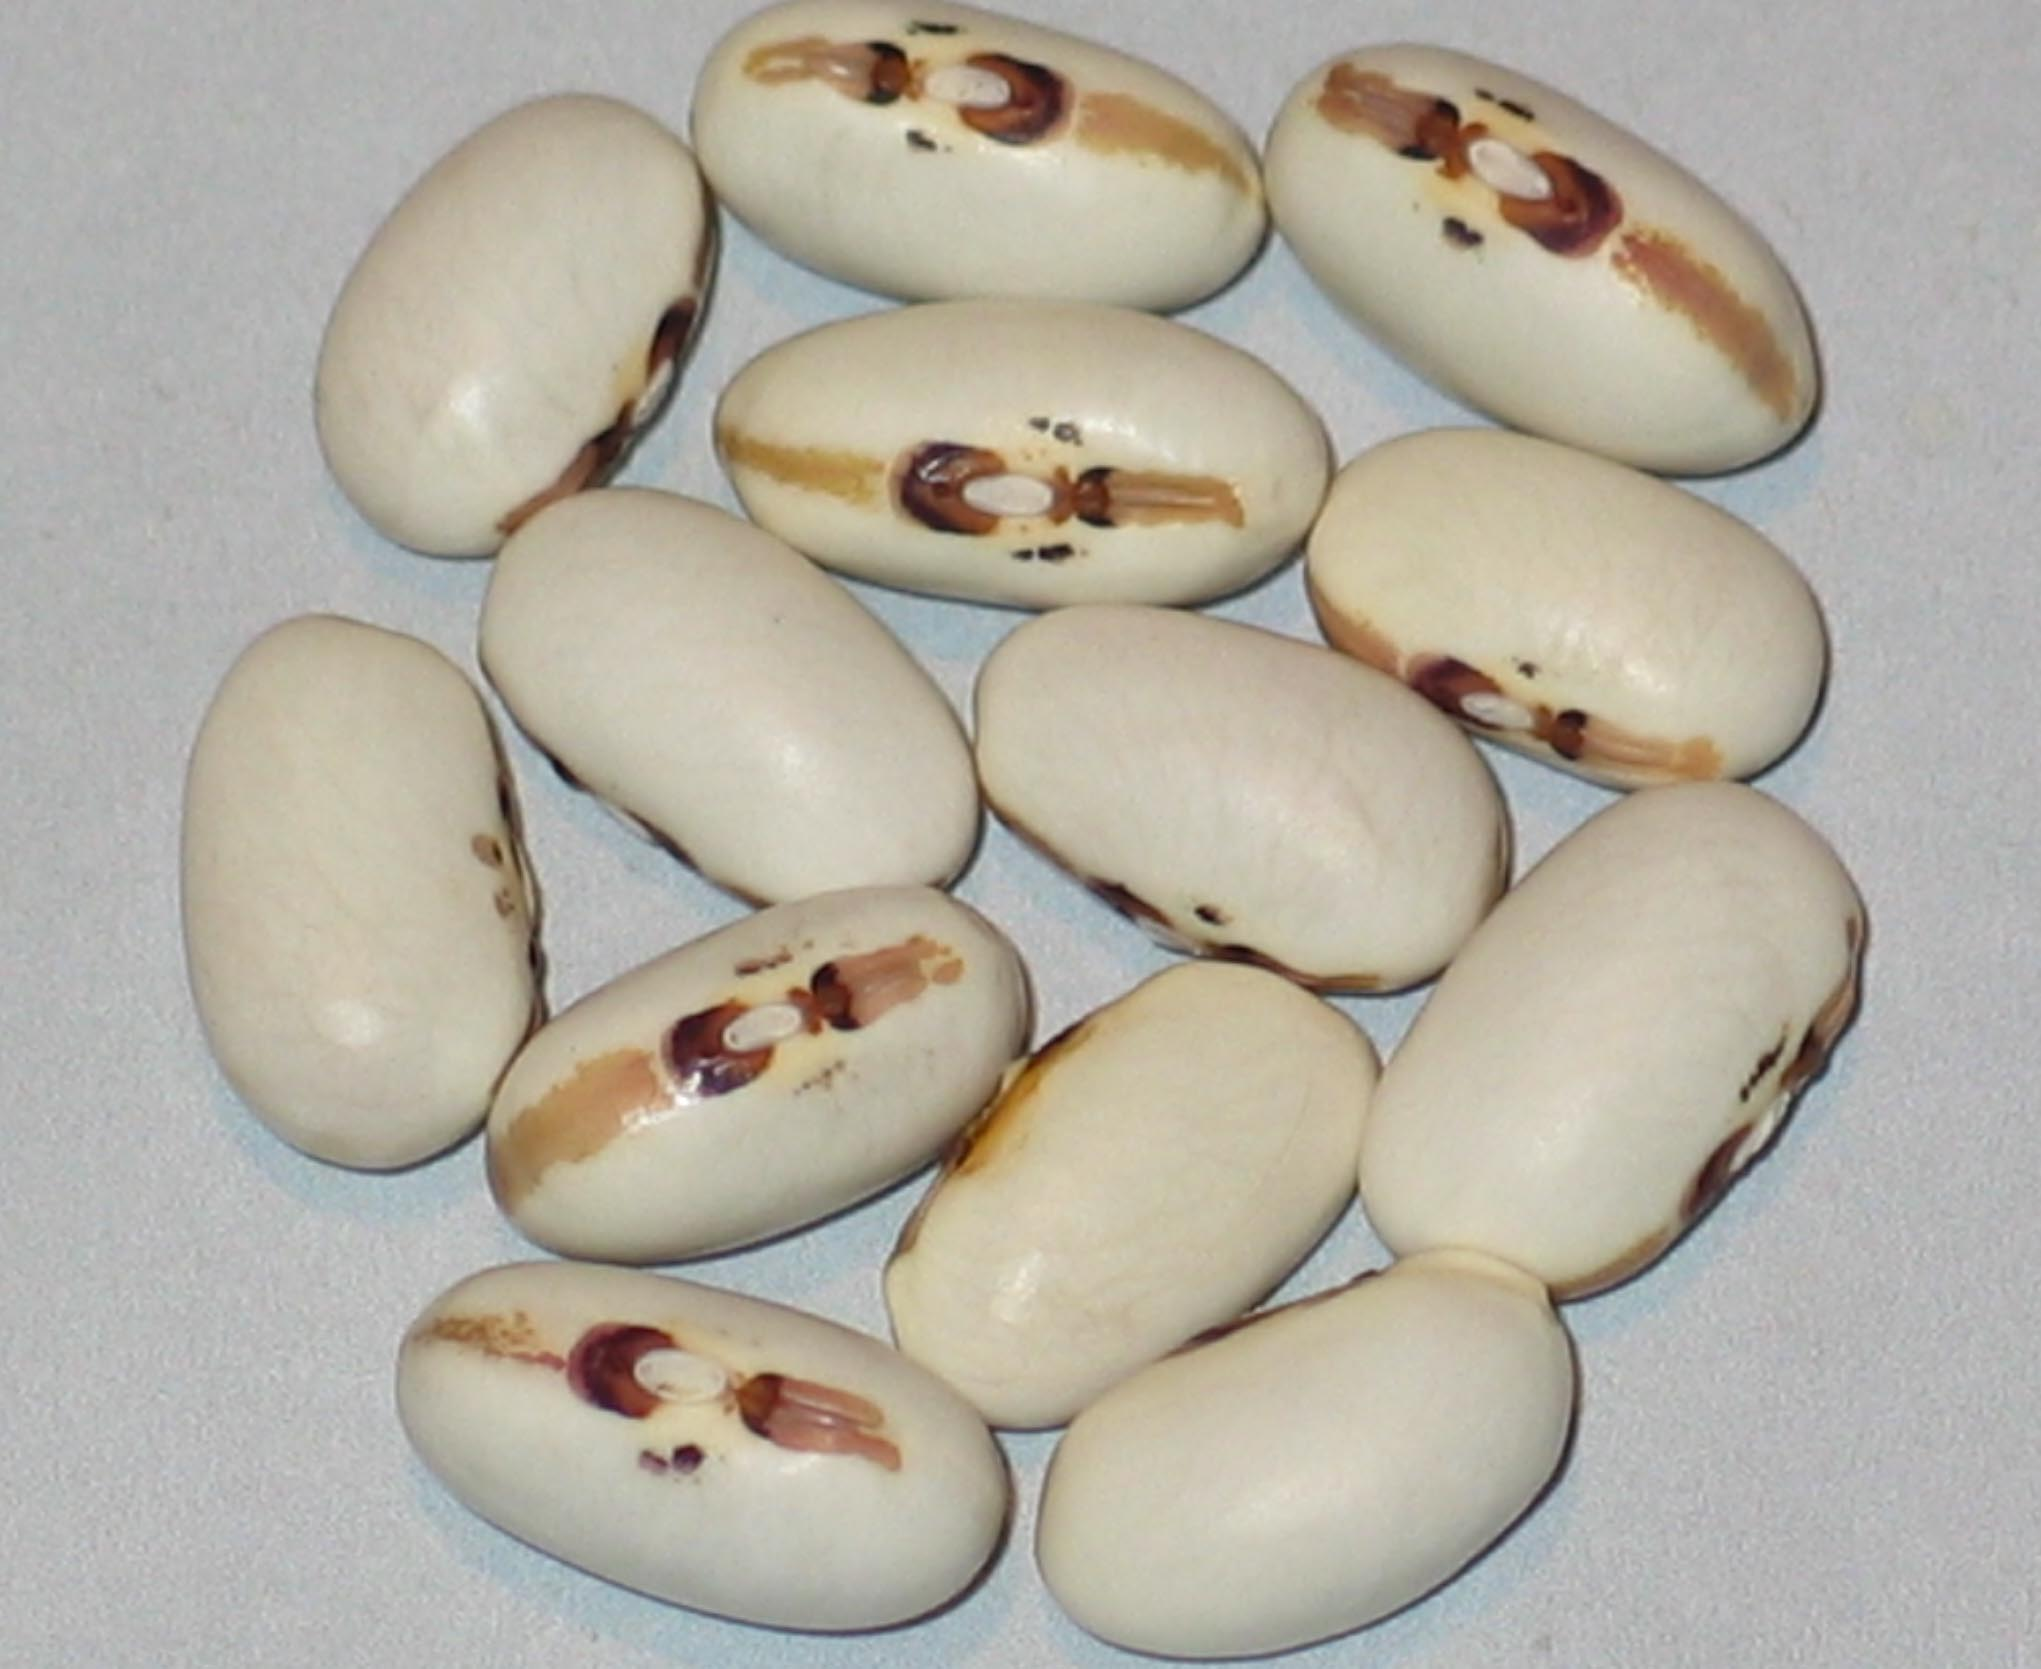 image of Angel Eye beans